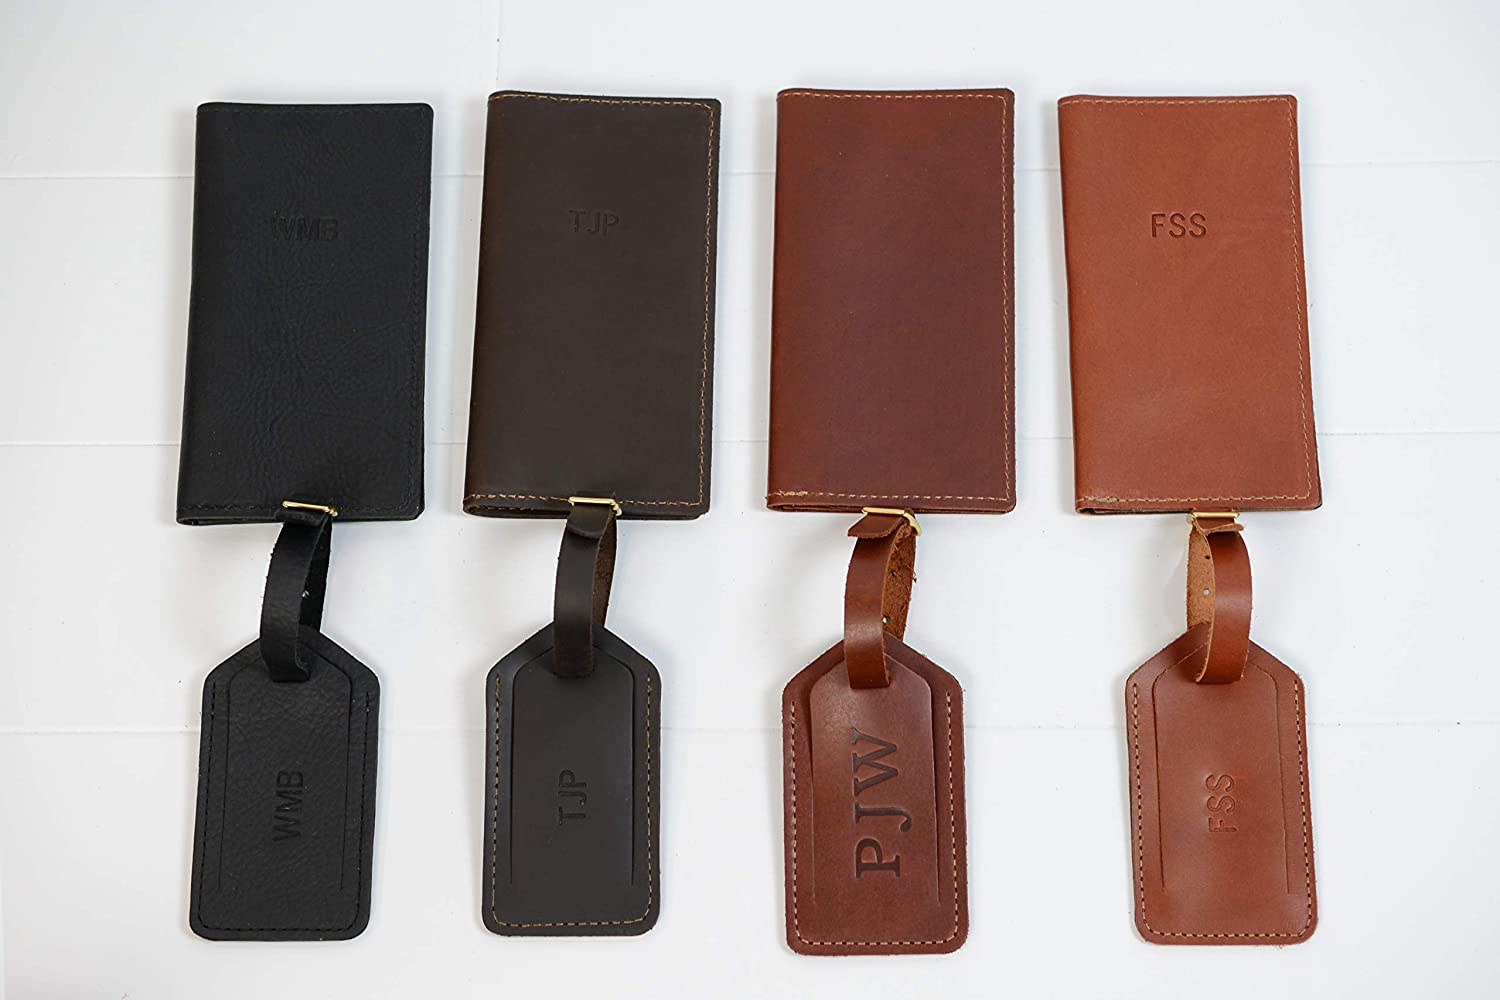 22c3d2fdaa5b9 Personalized Leather Travel Wallet + Luggage Tag Gift Set |Custom ...